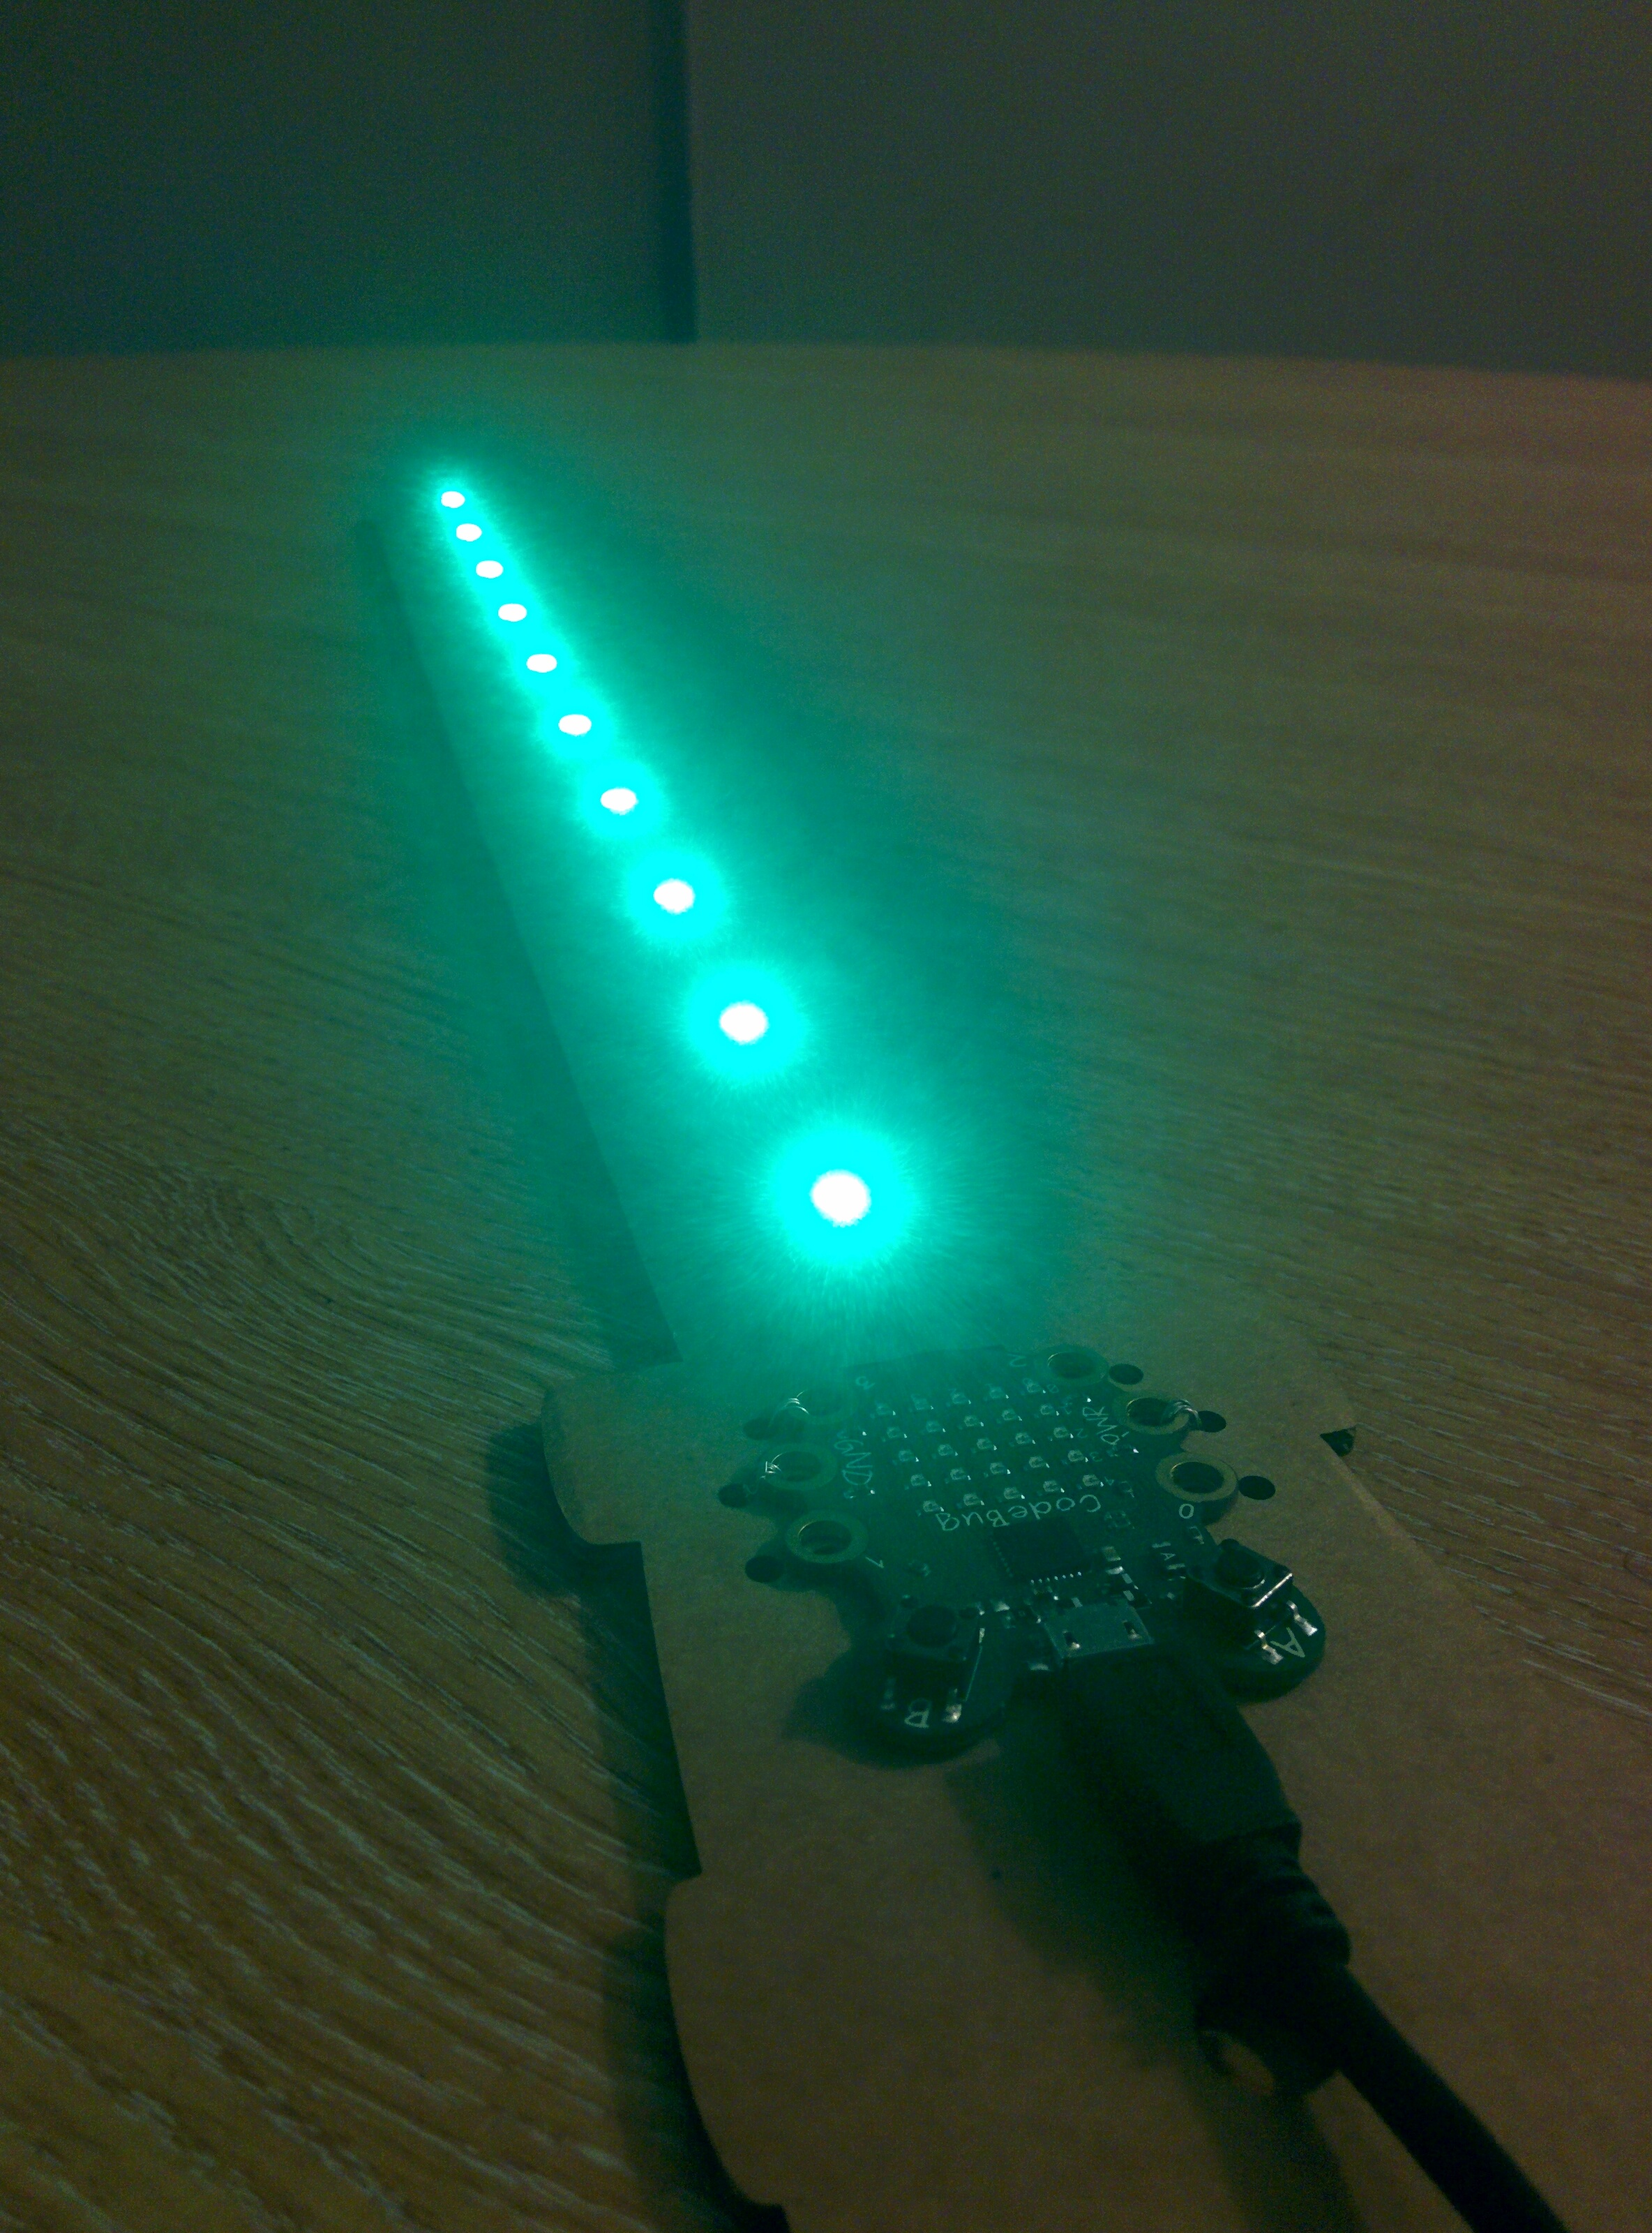 GlowBug lightsaber